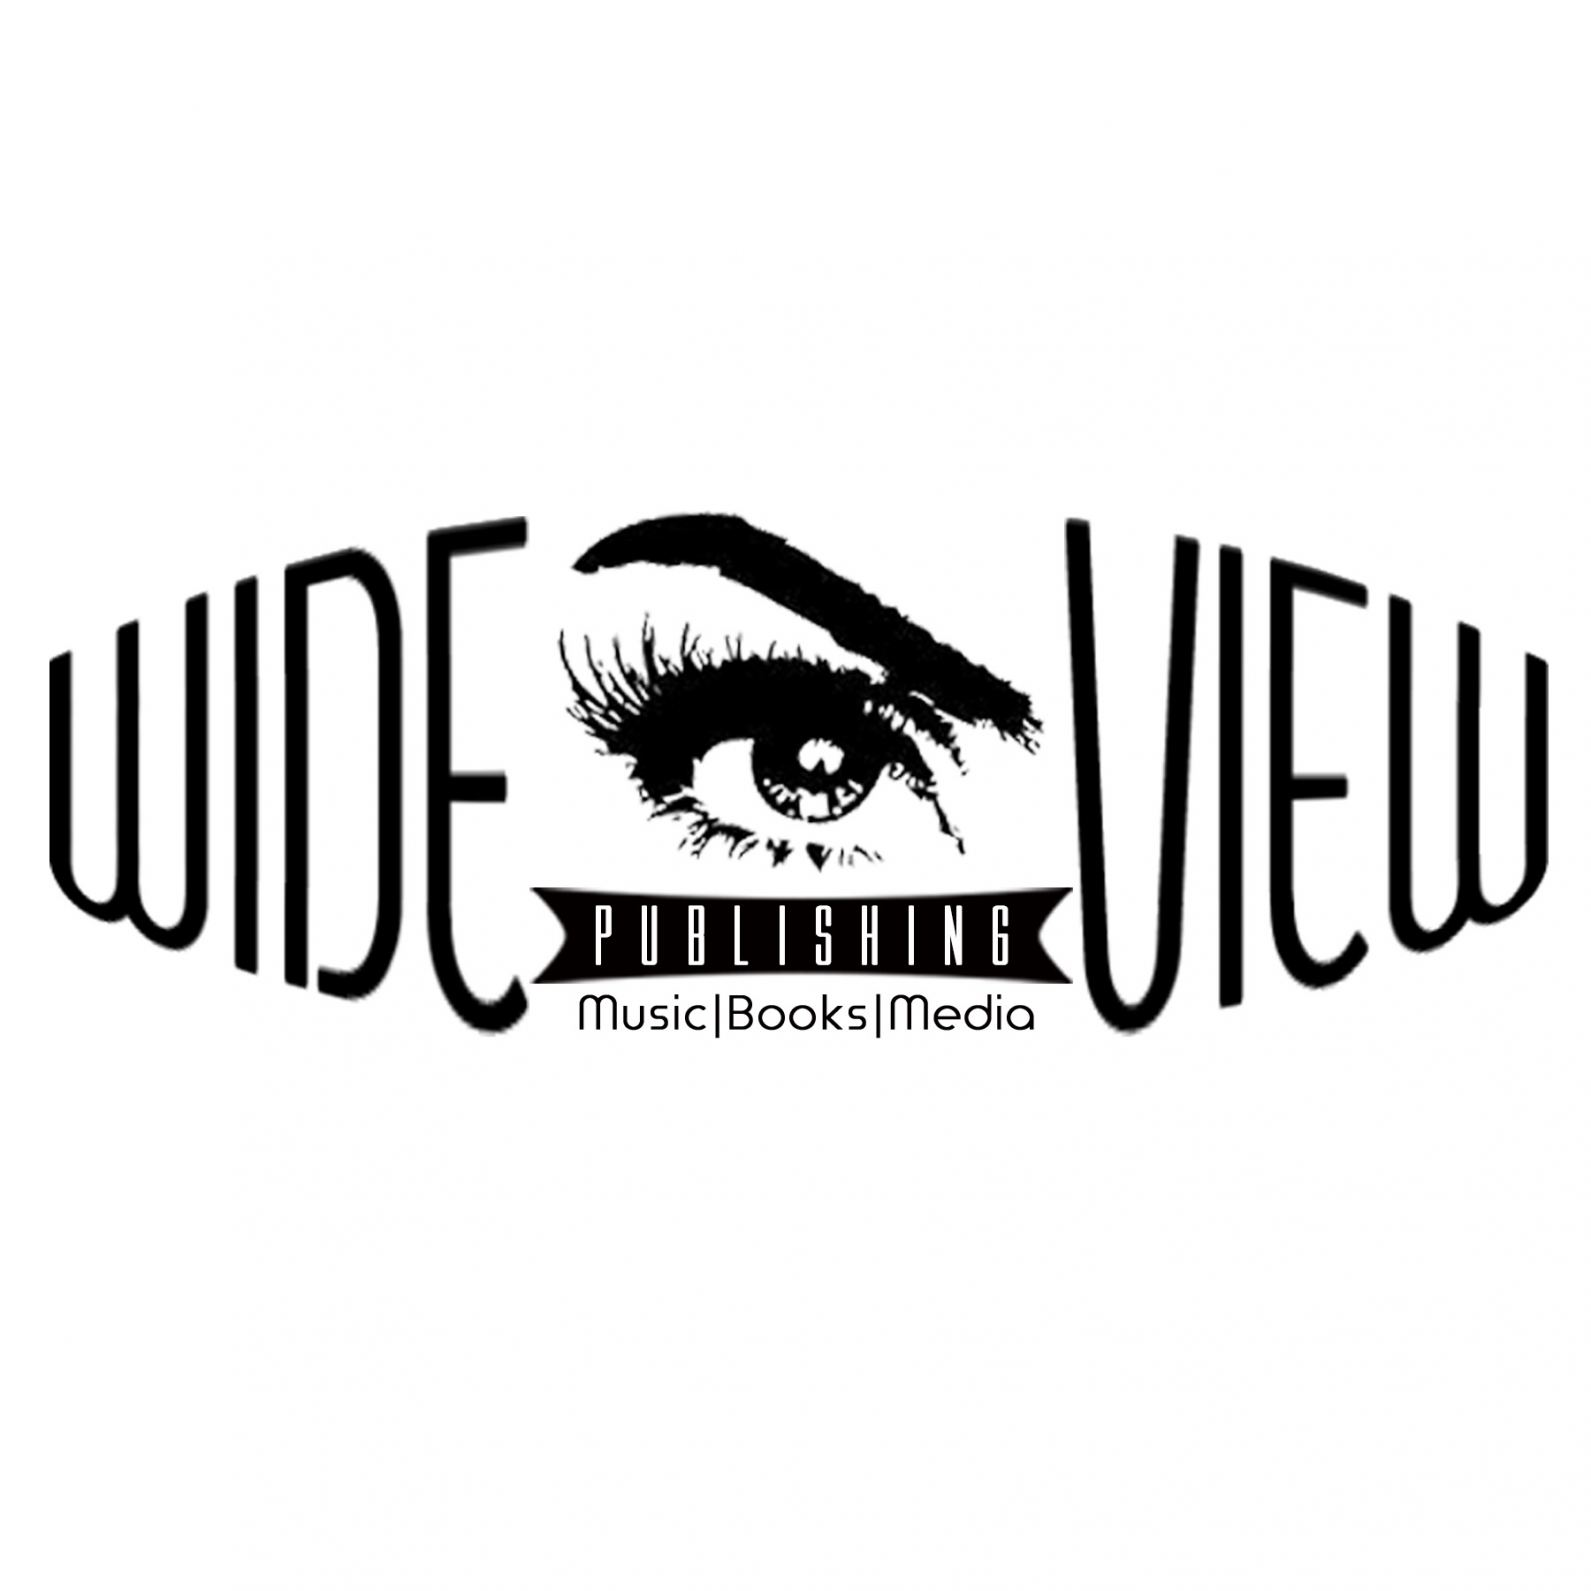 Wide View Publishing Logo